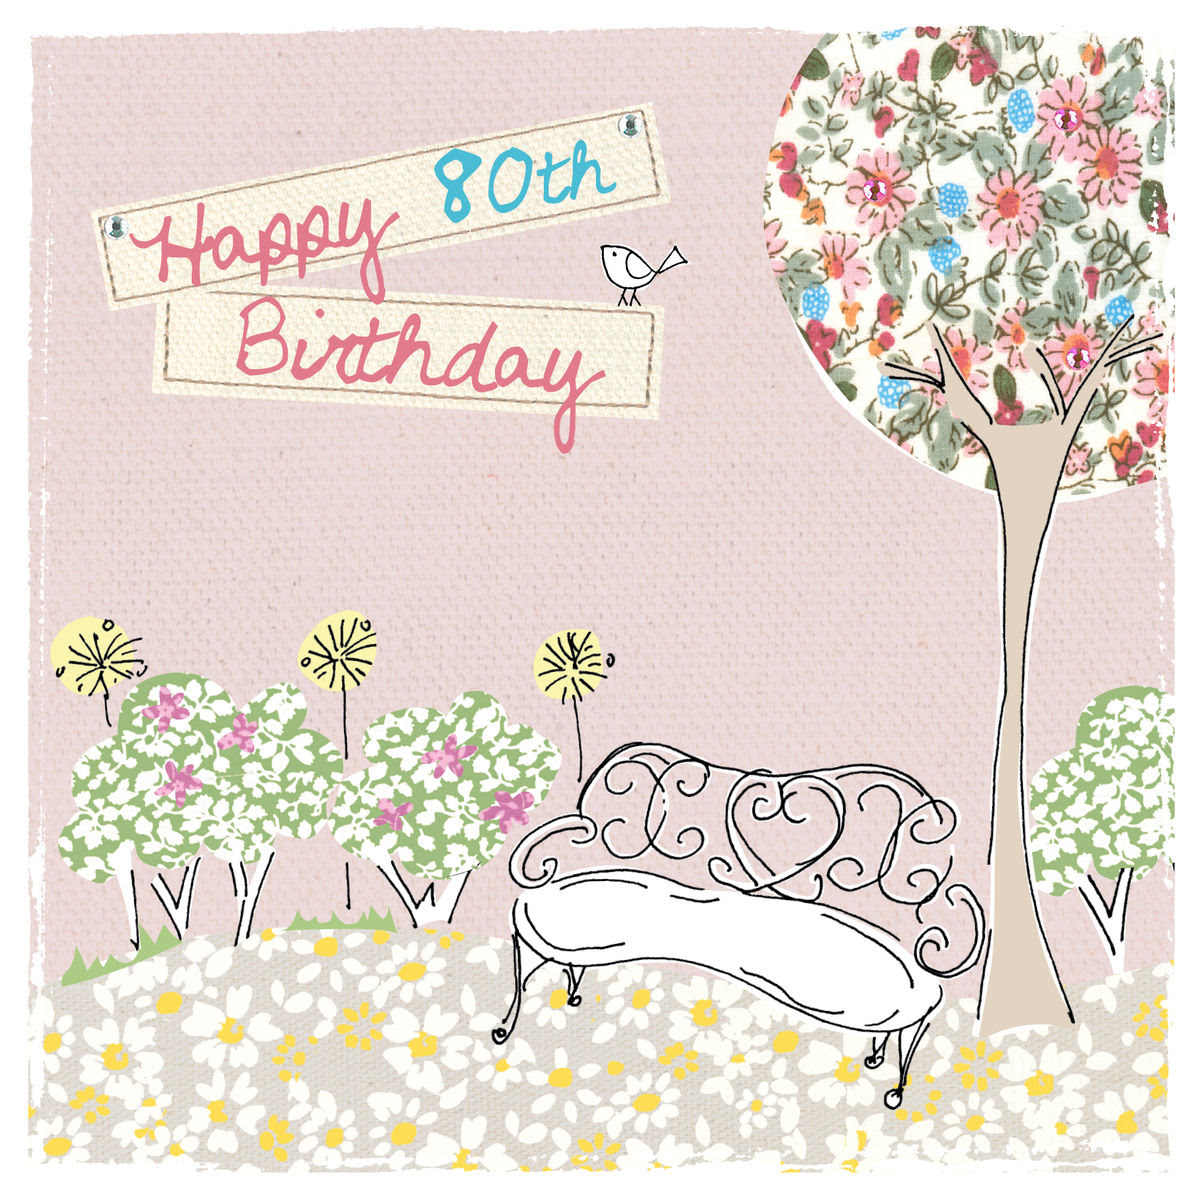 buy female 80th birthday card online garden bench flowers eightieth birthday card for her age eighty birthday cards_massive